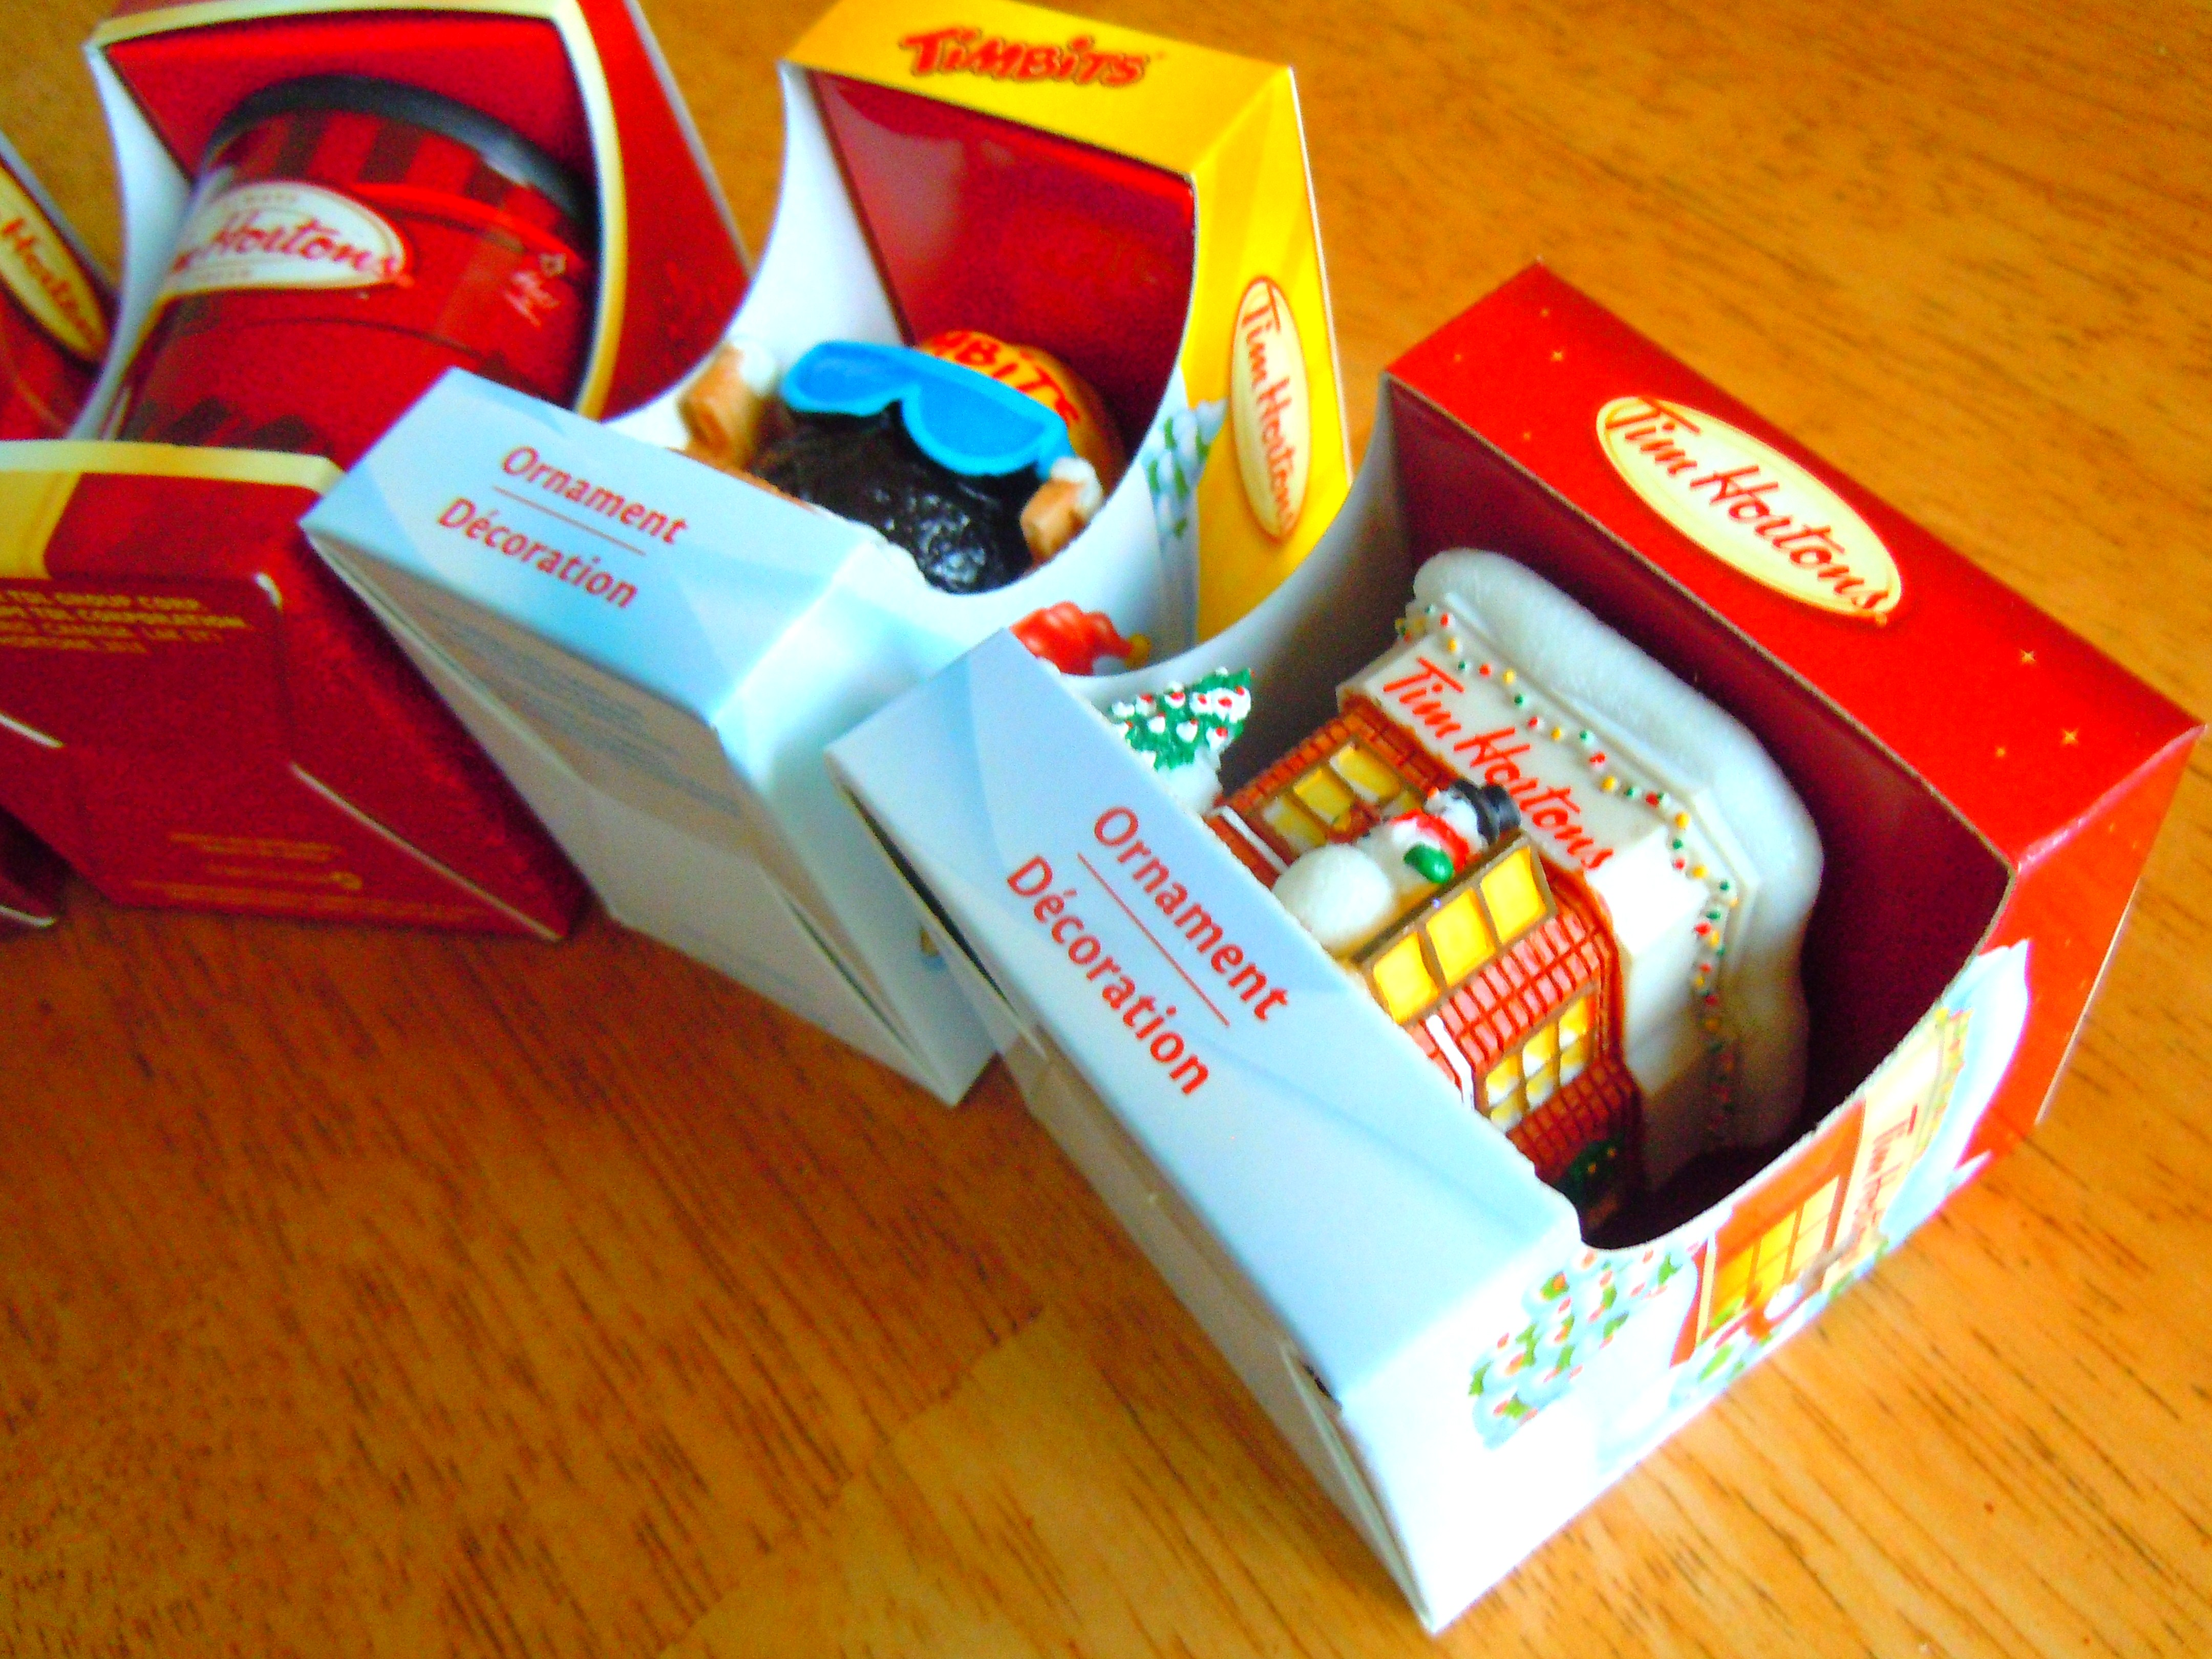 Tim Hortons Christmas tree ornaments | Ate by Ate